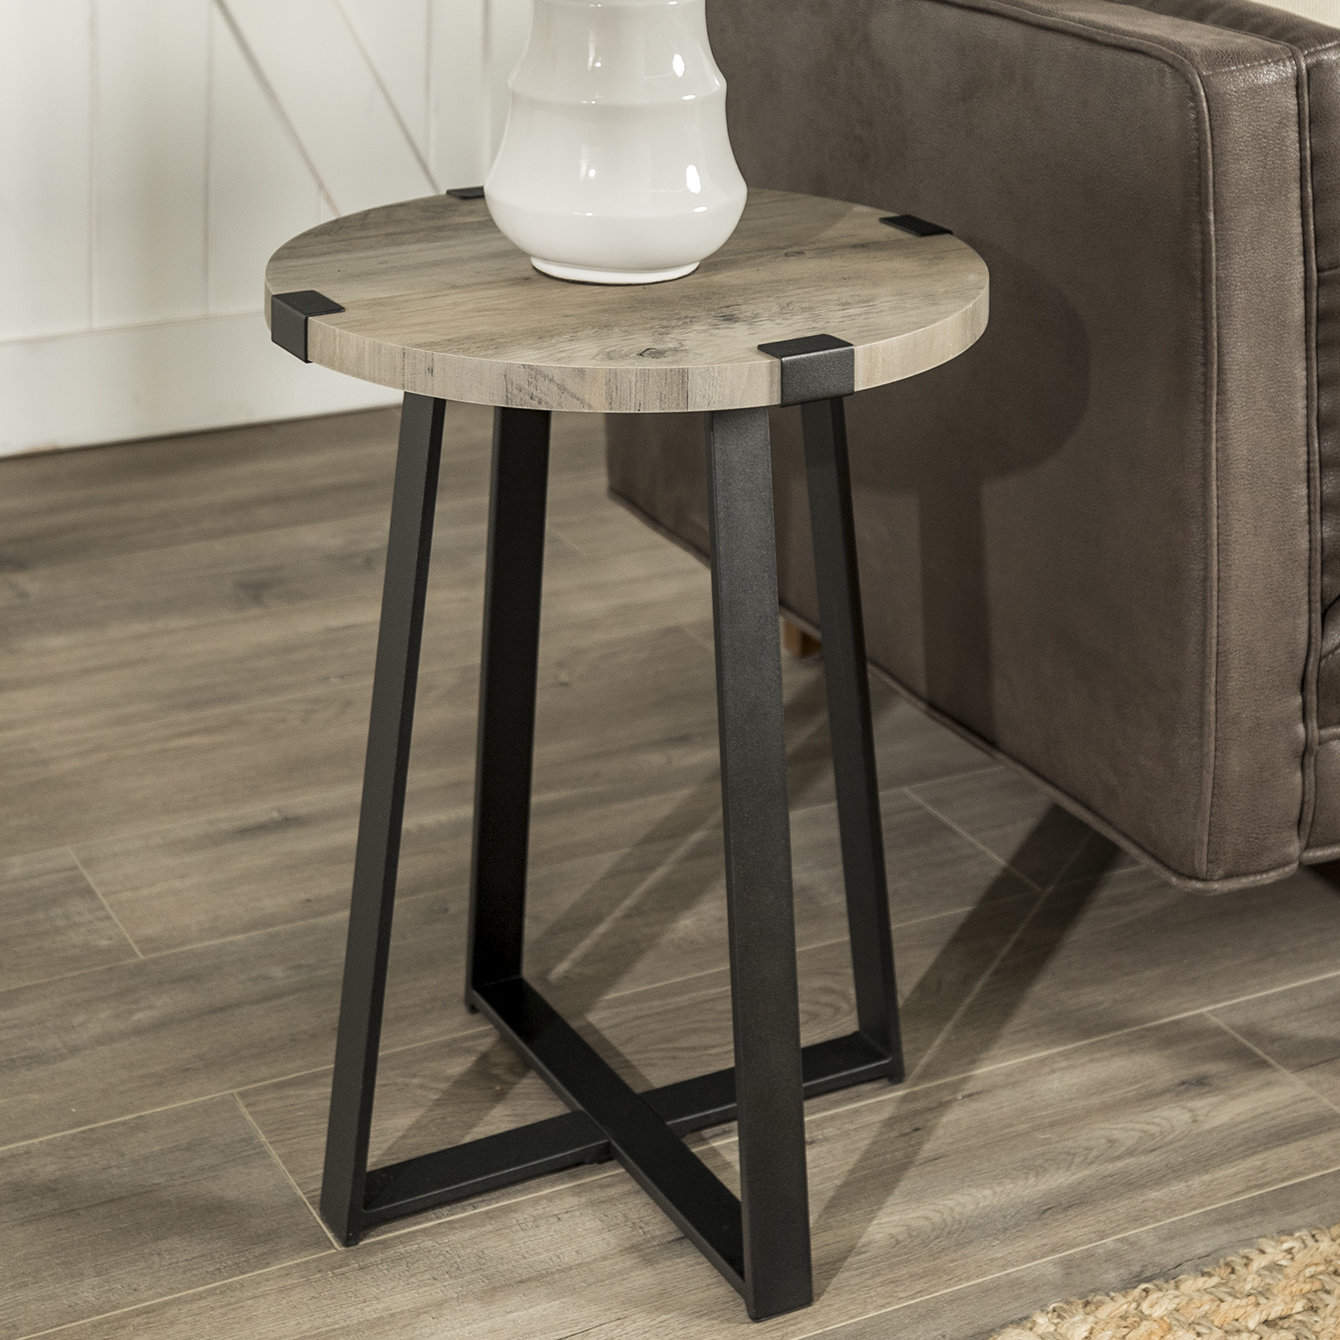 unique end tables bowden side table zoey night accent with baskets walnut quickview dark rustoleum metal paint modern linens tesco coffee small armchairs for living room outdoor